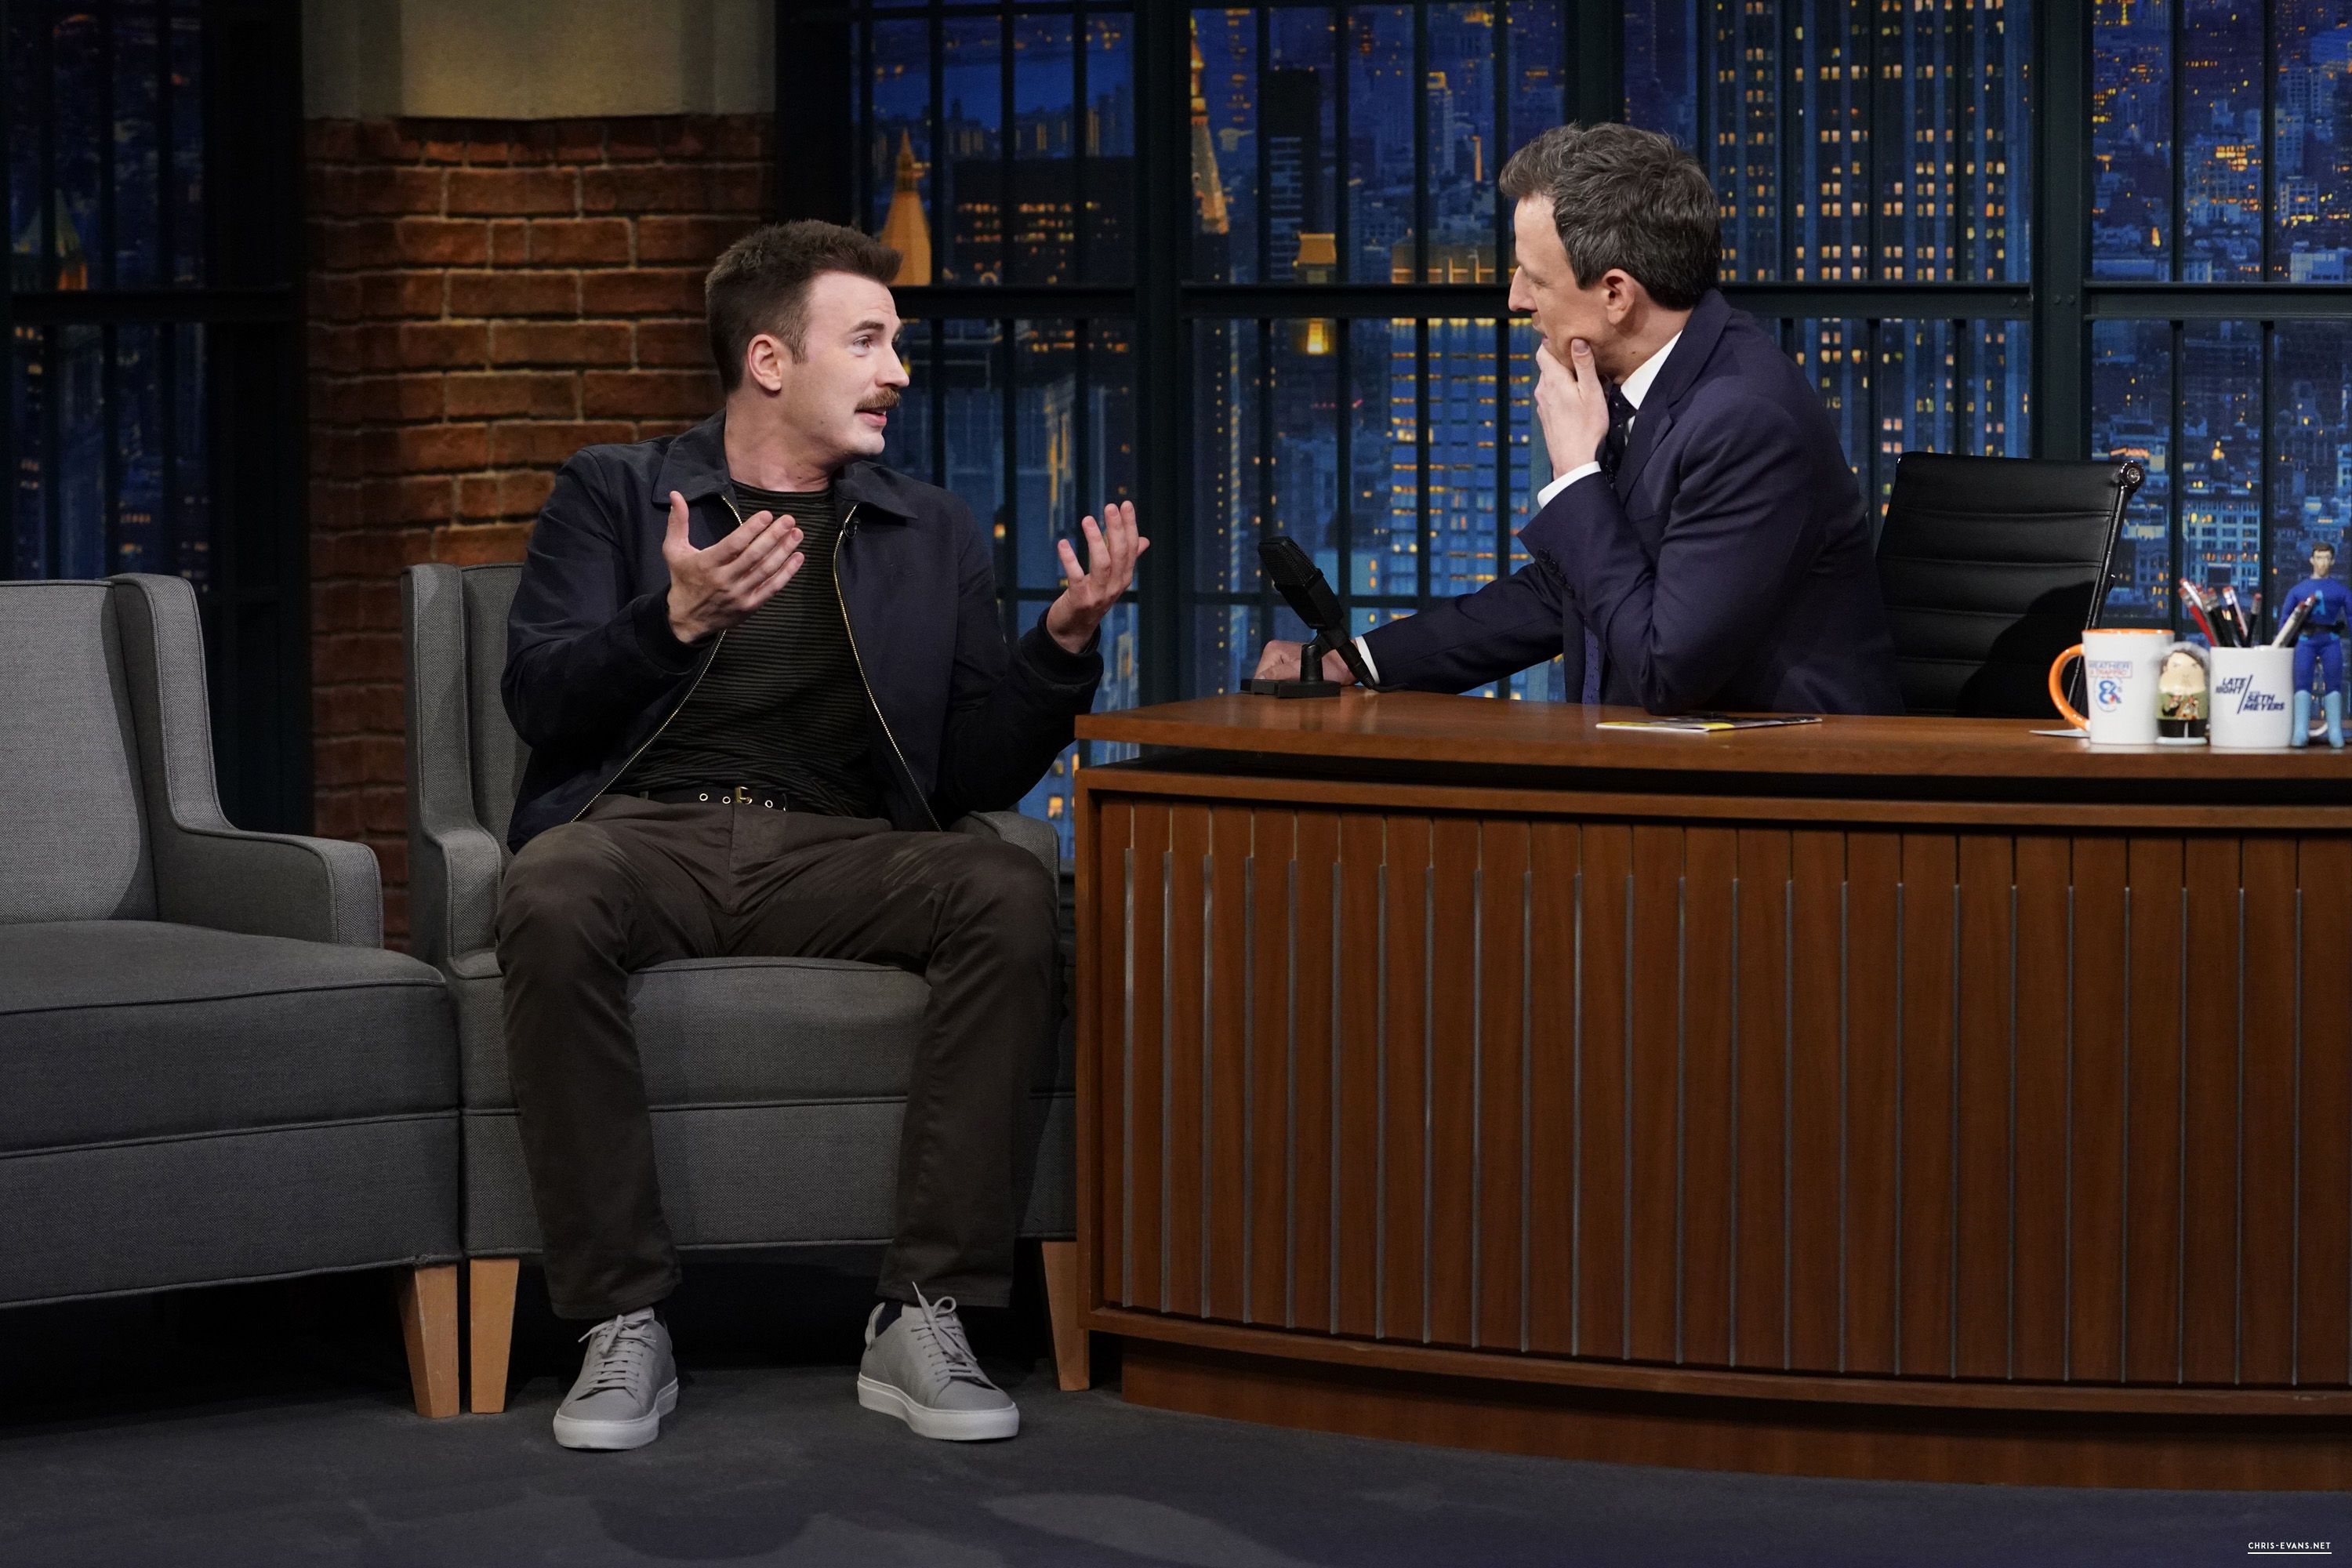 http://chris-evans.net/photos/albums/Appearances/2018/04%2023%20Late%20Night%20with%20Seth%20Meyers/006.jpg